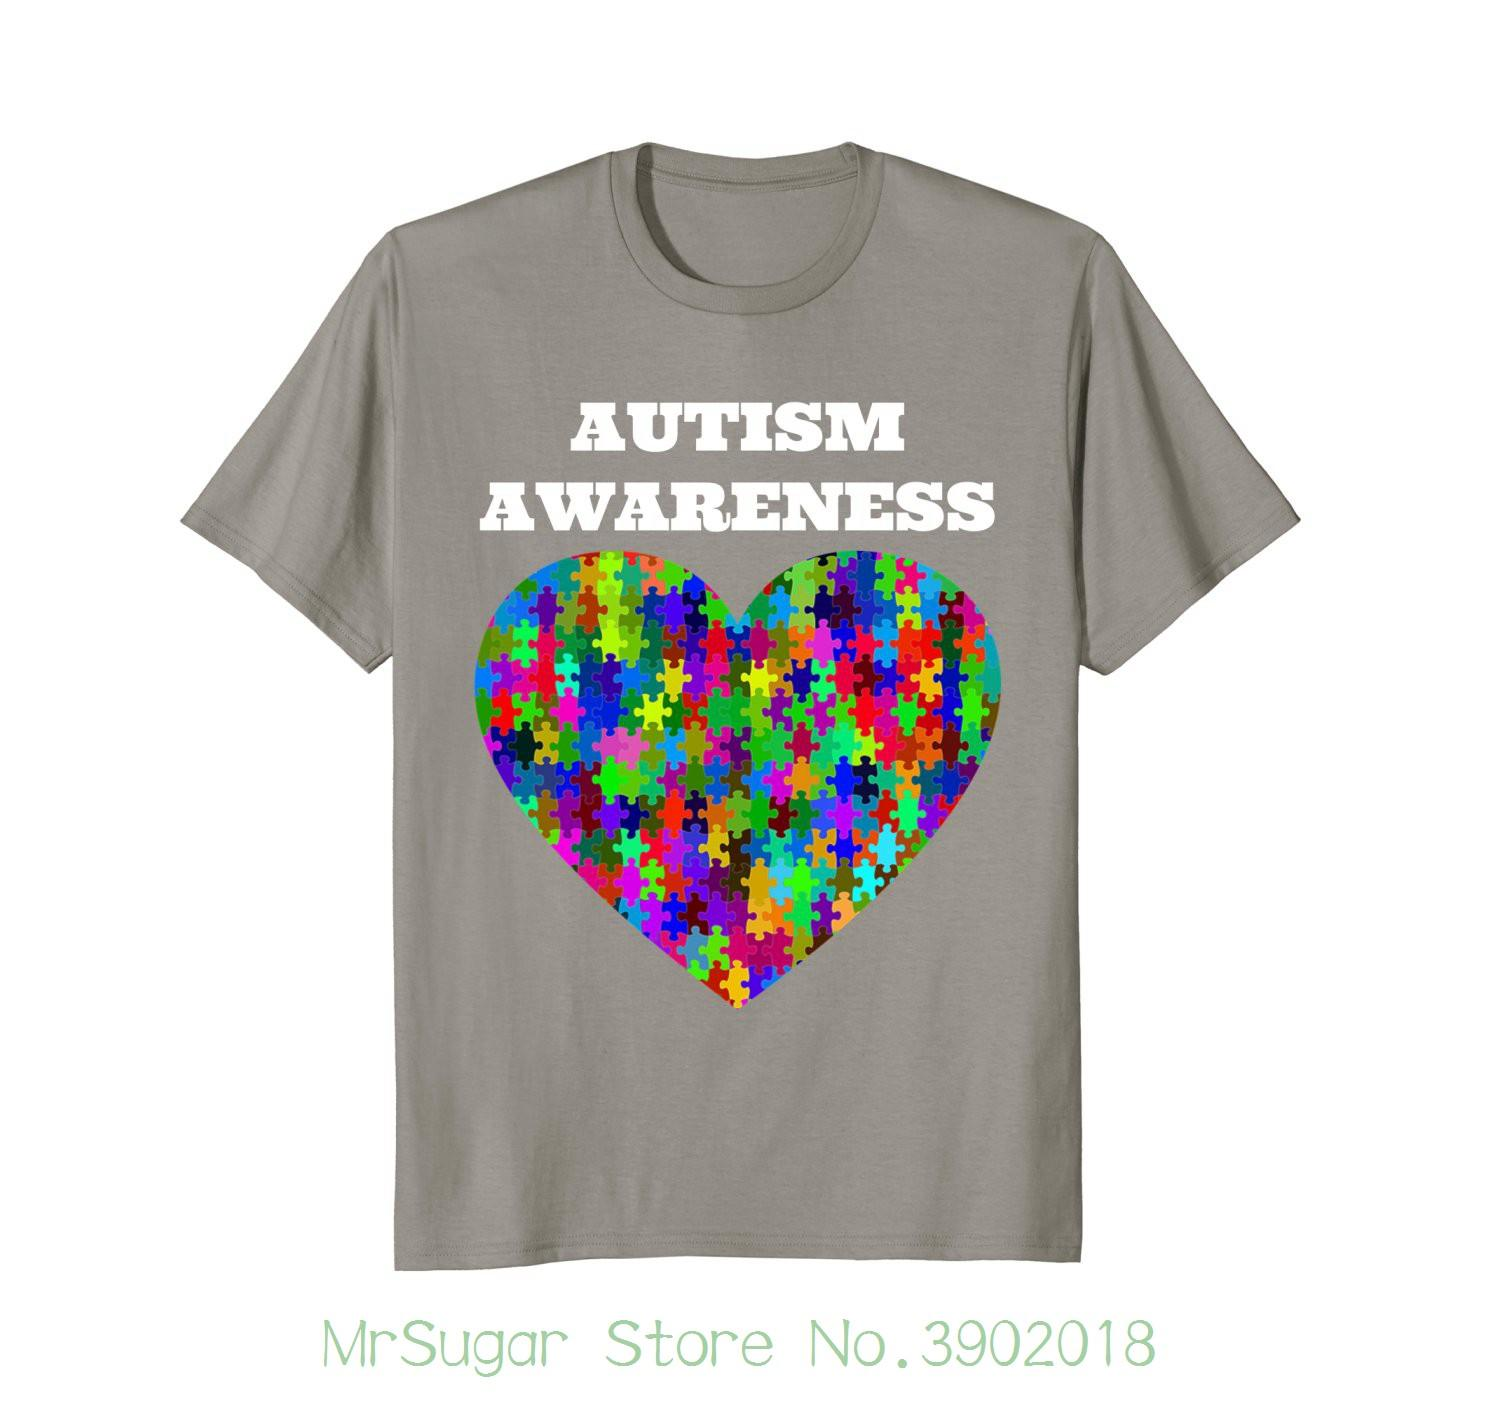 8d155f1c8 Autism Awareness T Shirt Rainbow Heart Puzzle Round Neck Best Selling Male  Natural Cotton Shirt T Shirts With Prints Humorous Shirts From  Mrsugarstore, ...